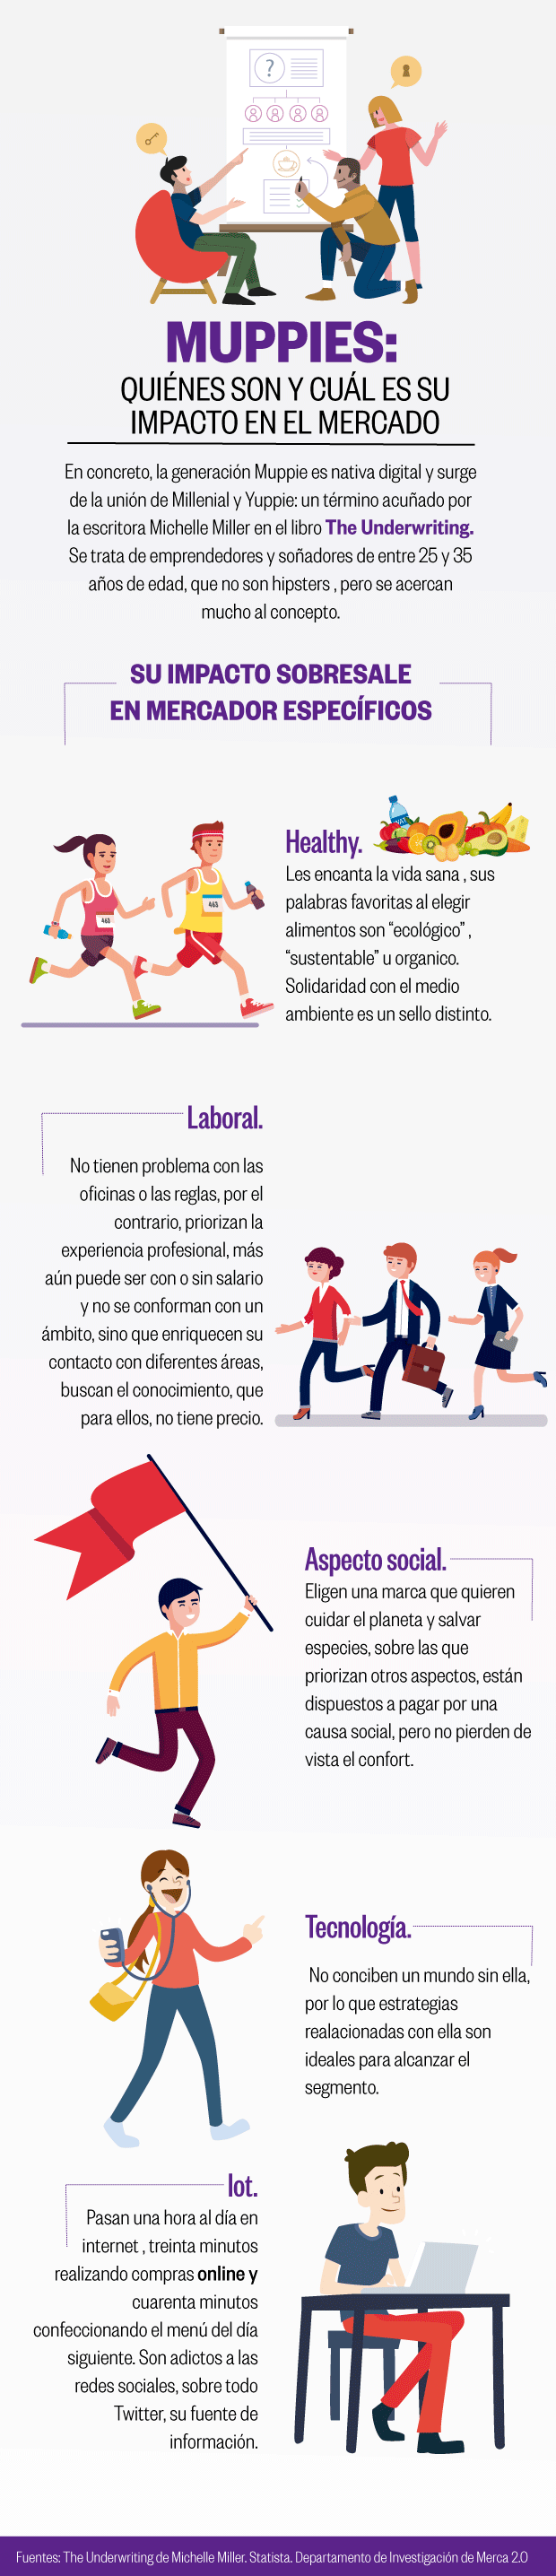 Infografia Muppies Marketing